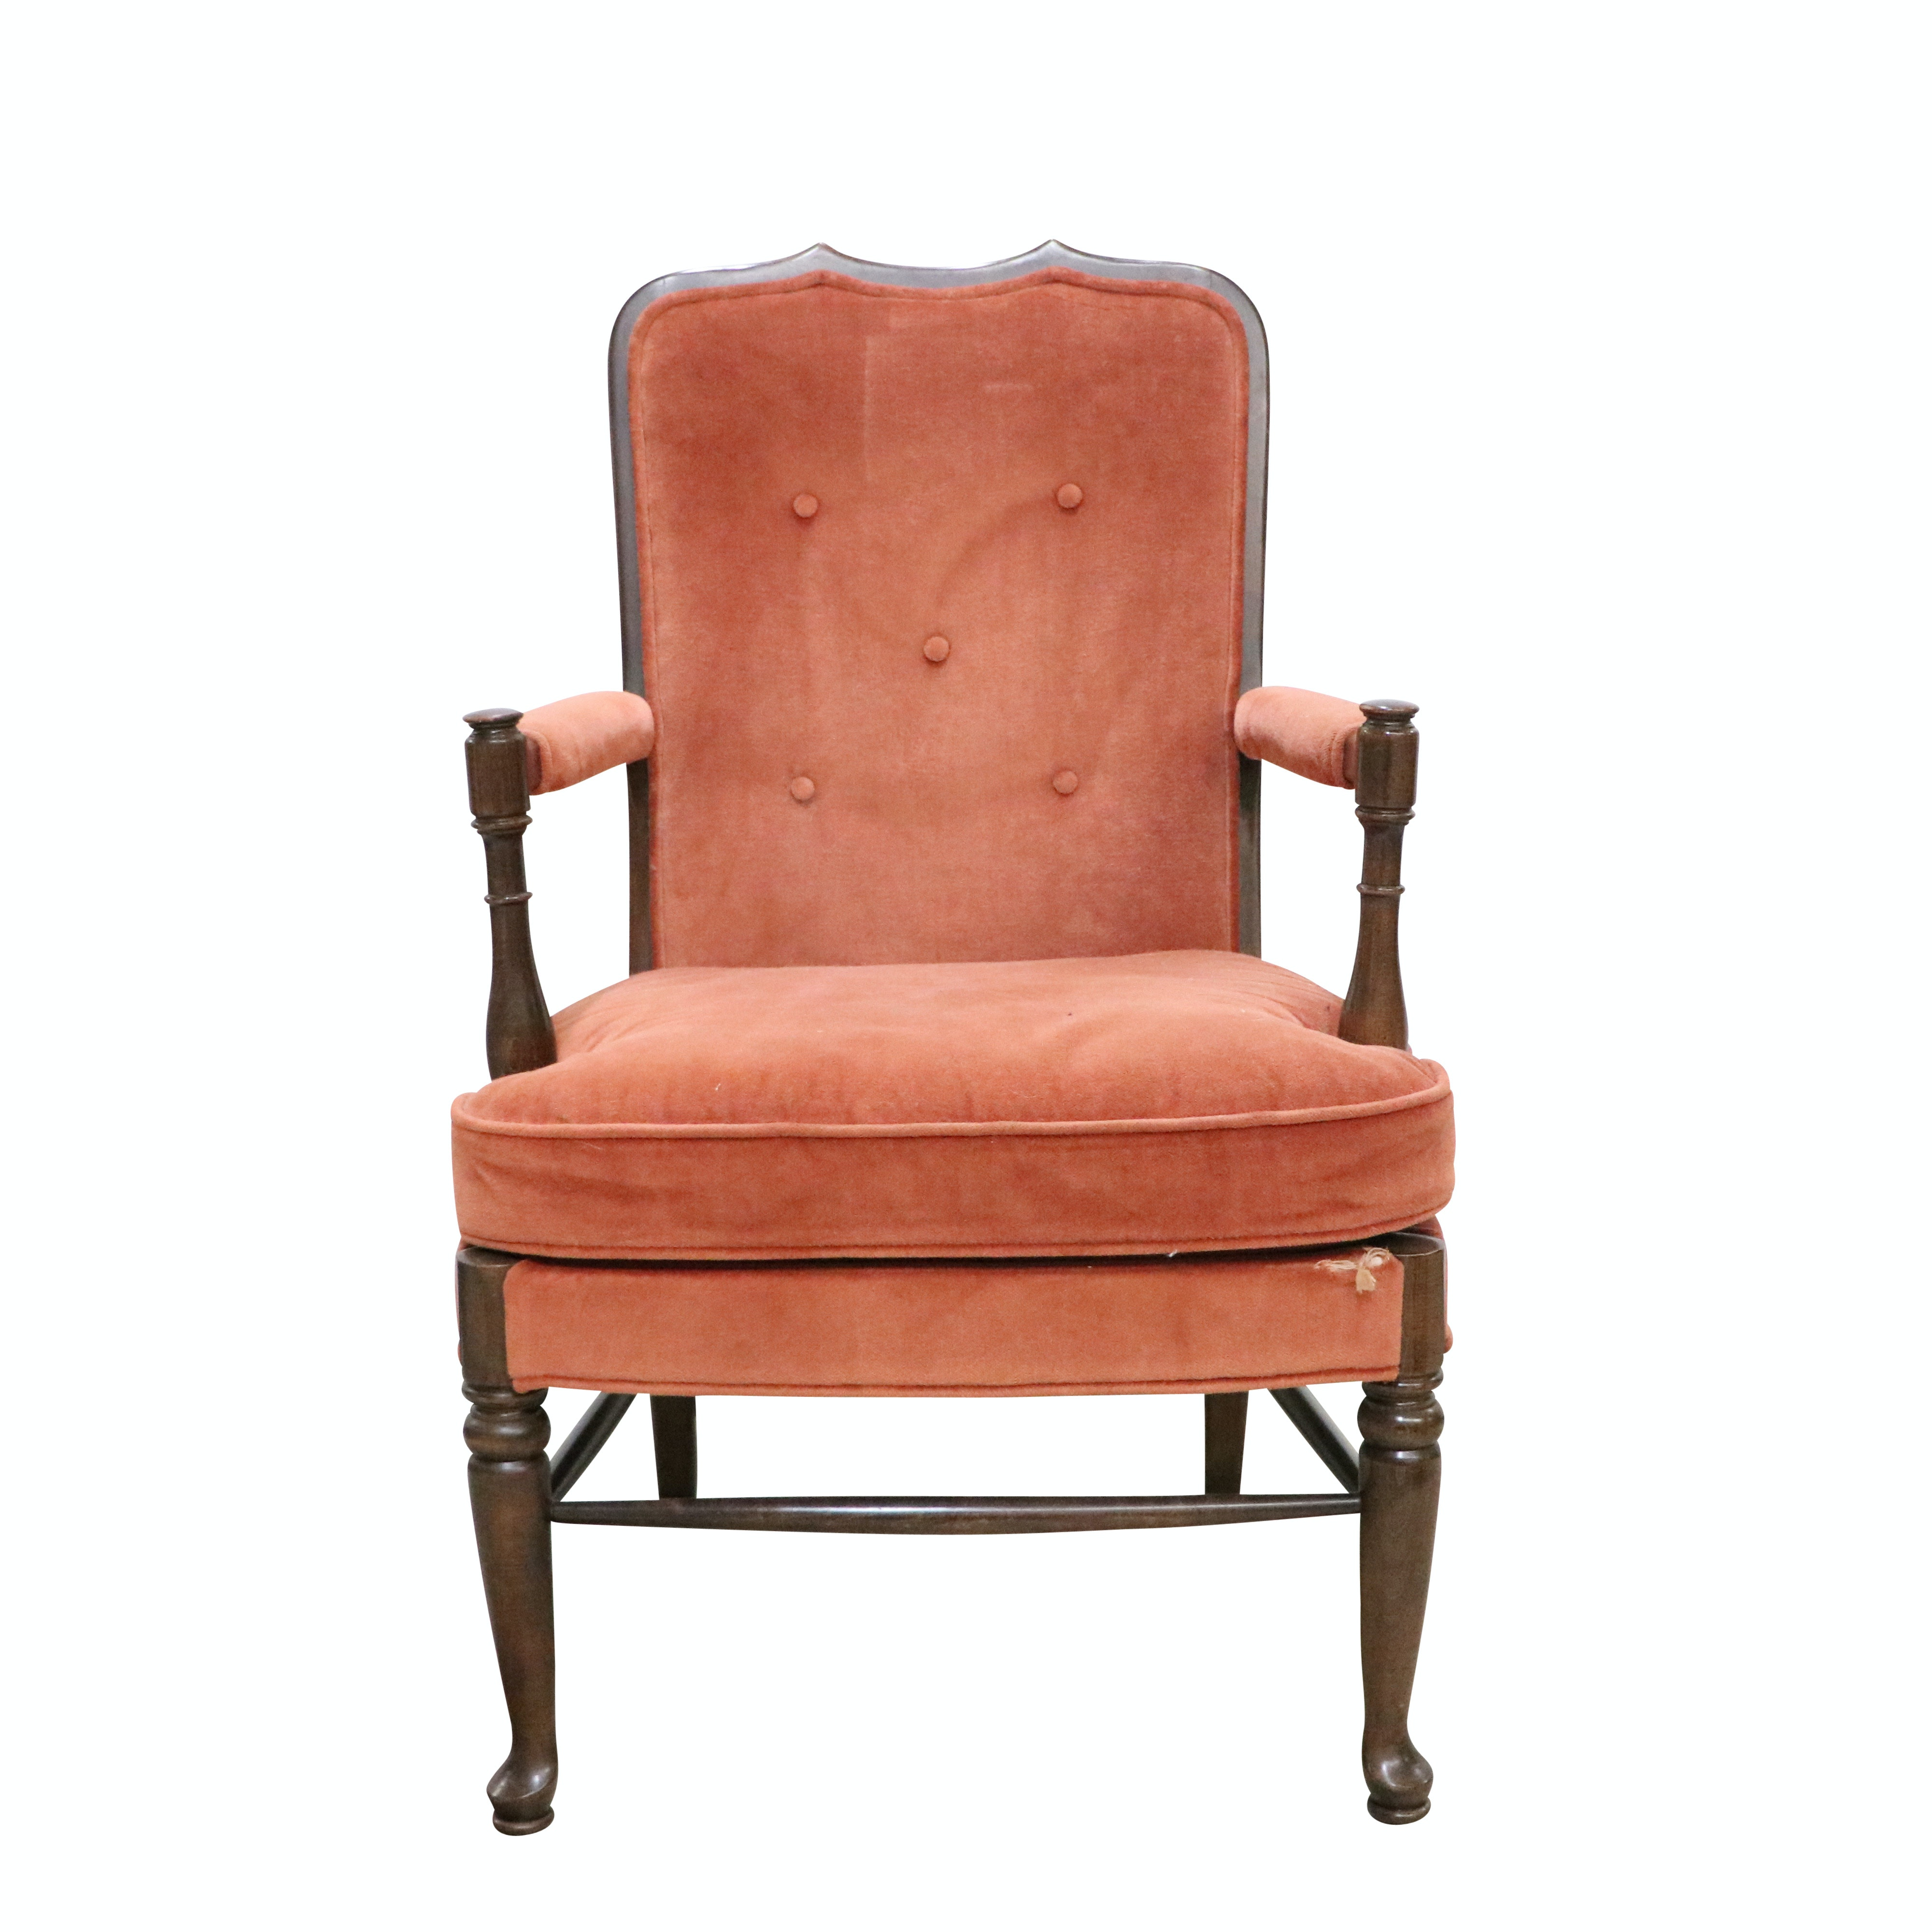 Vintage Upholstered Armchair by Ethan Allen